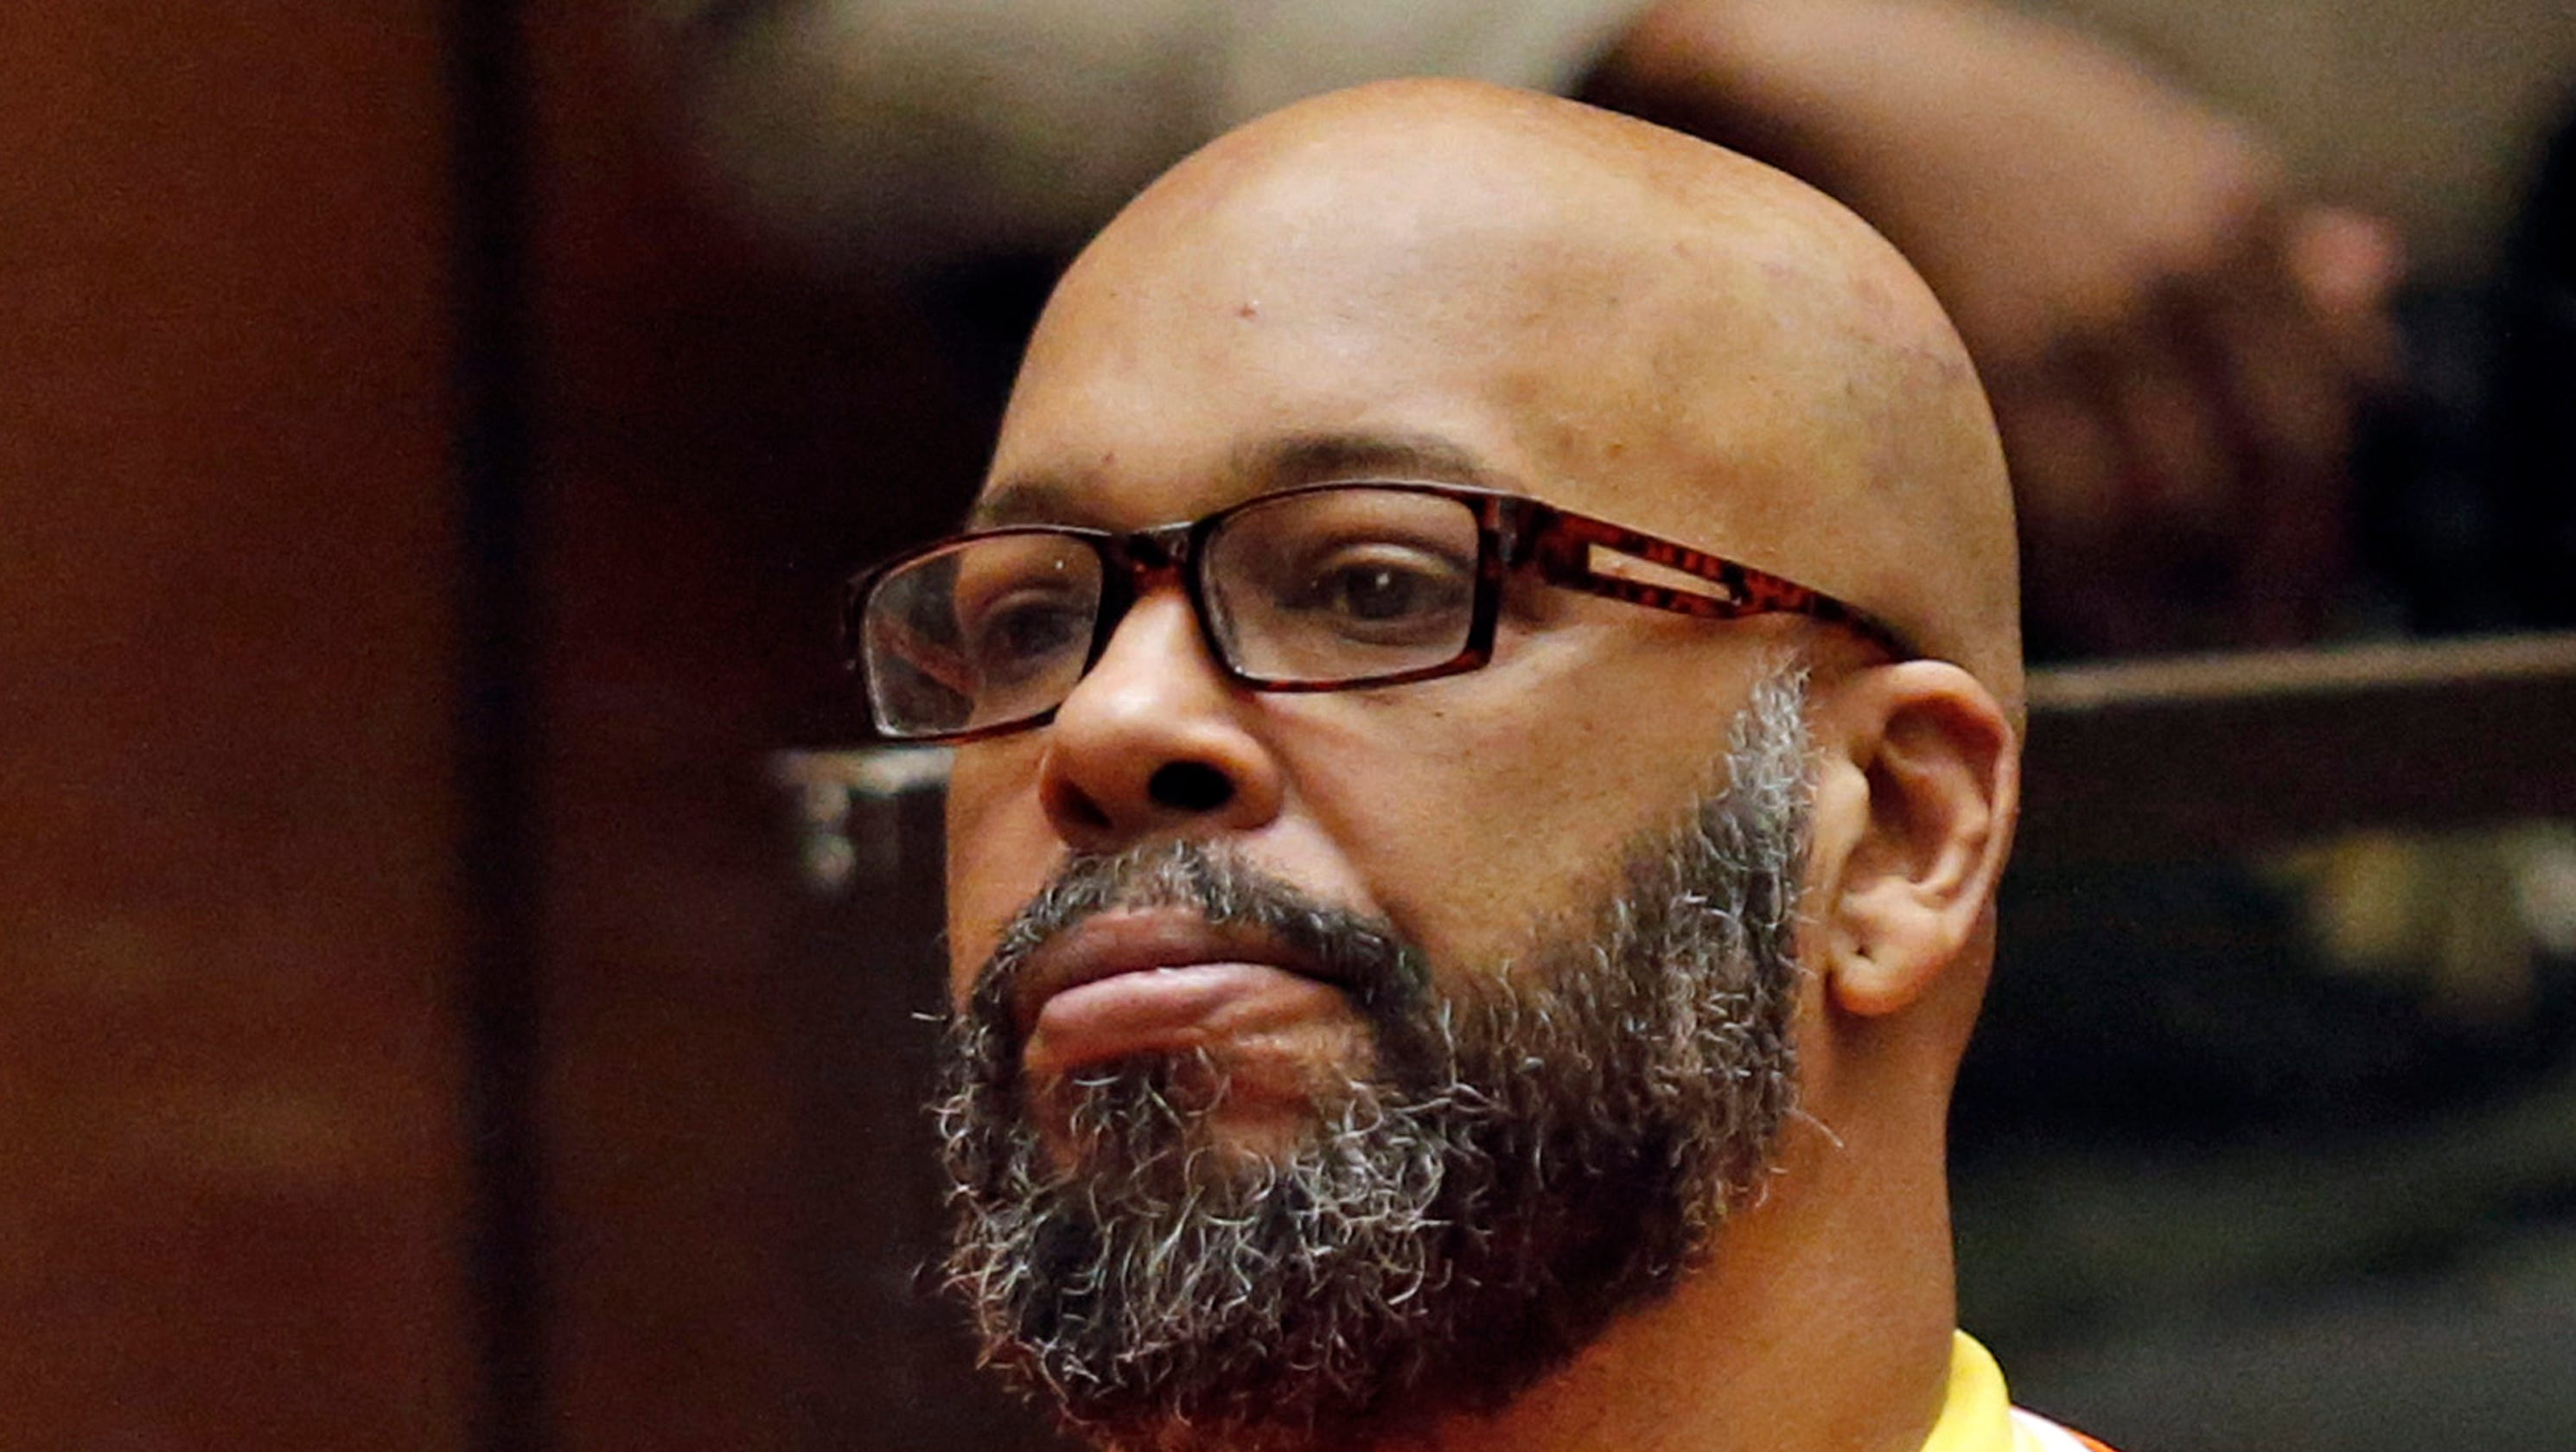 Former rap mogul Suge Knight sentenced to 28 years in prison